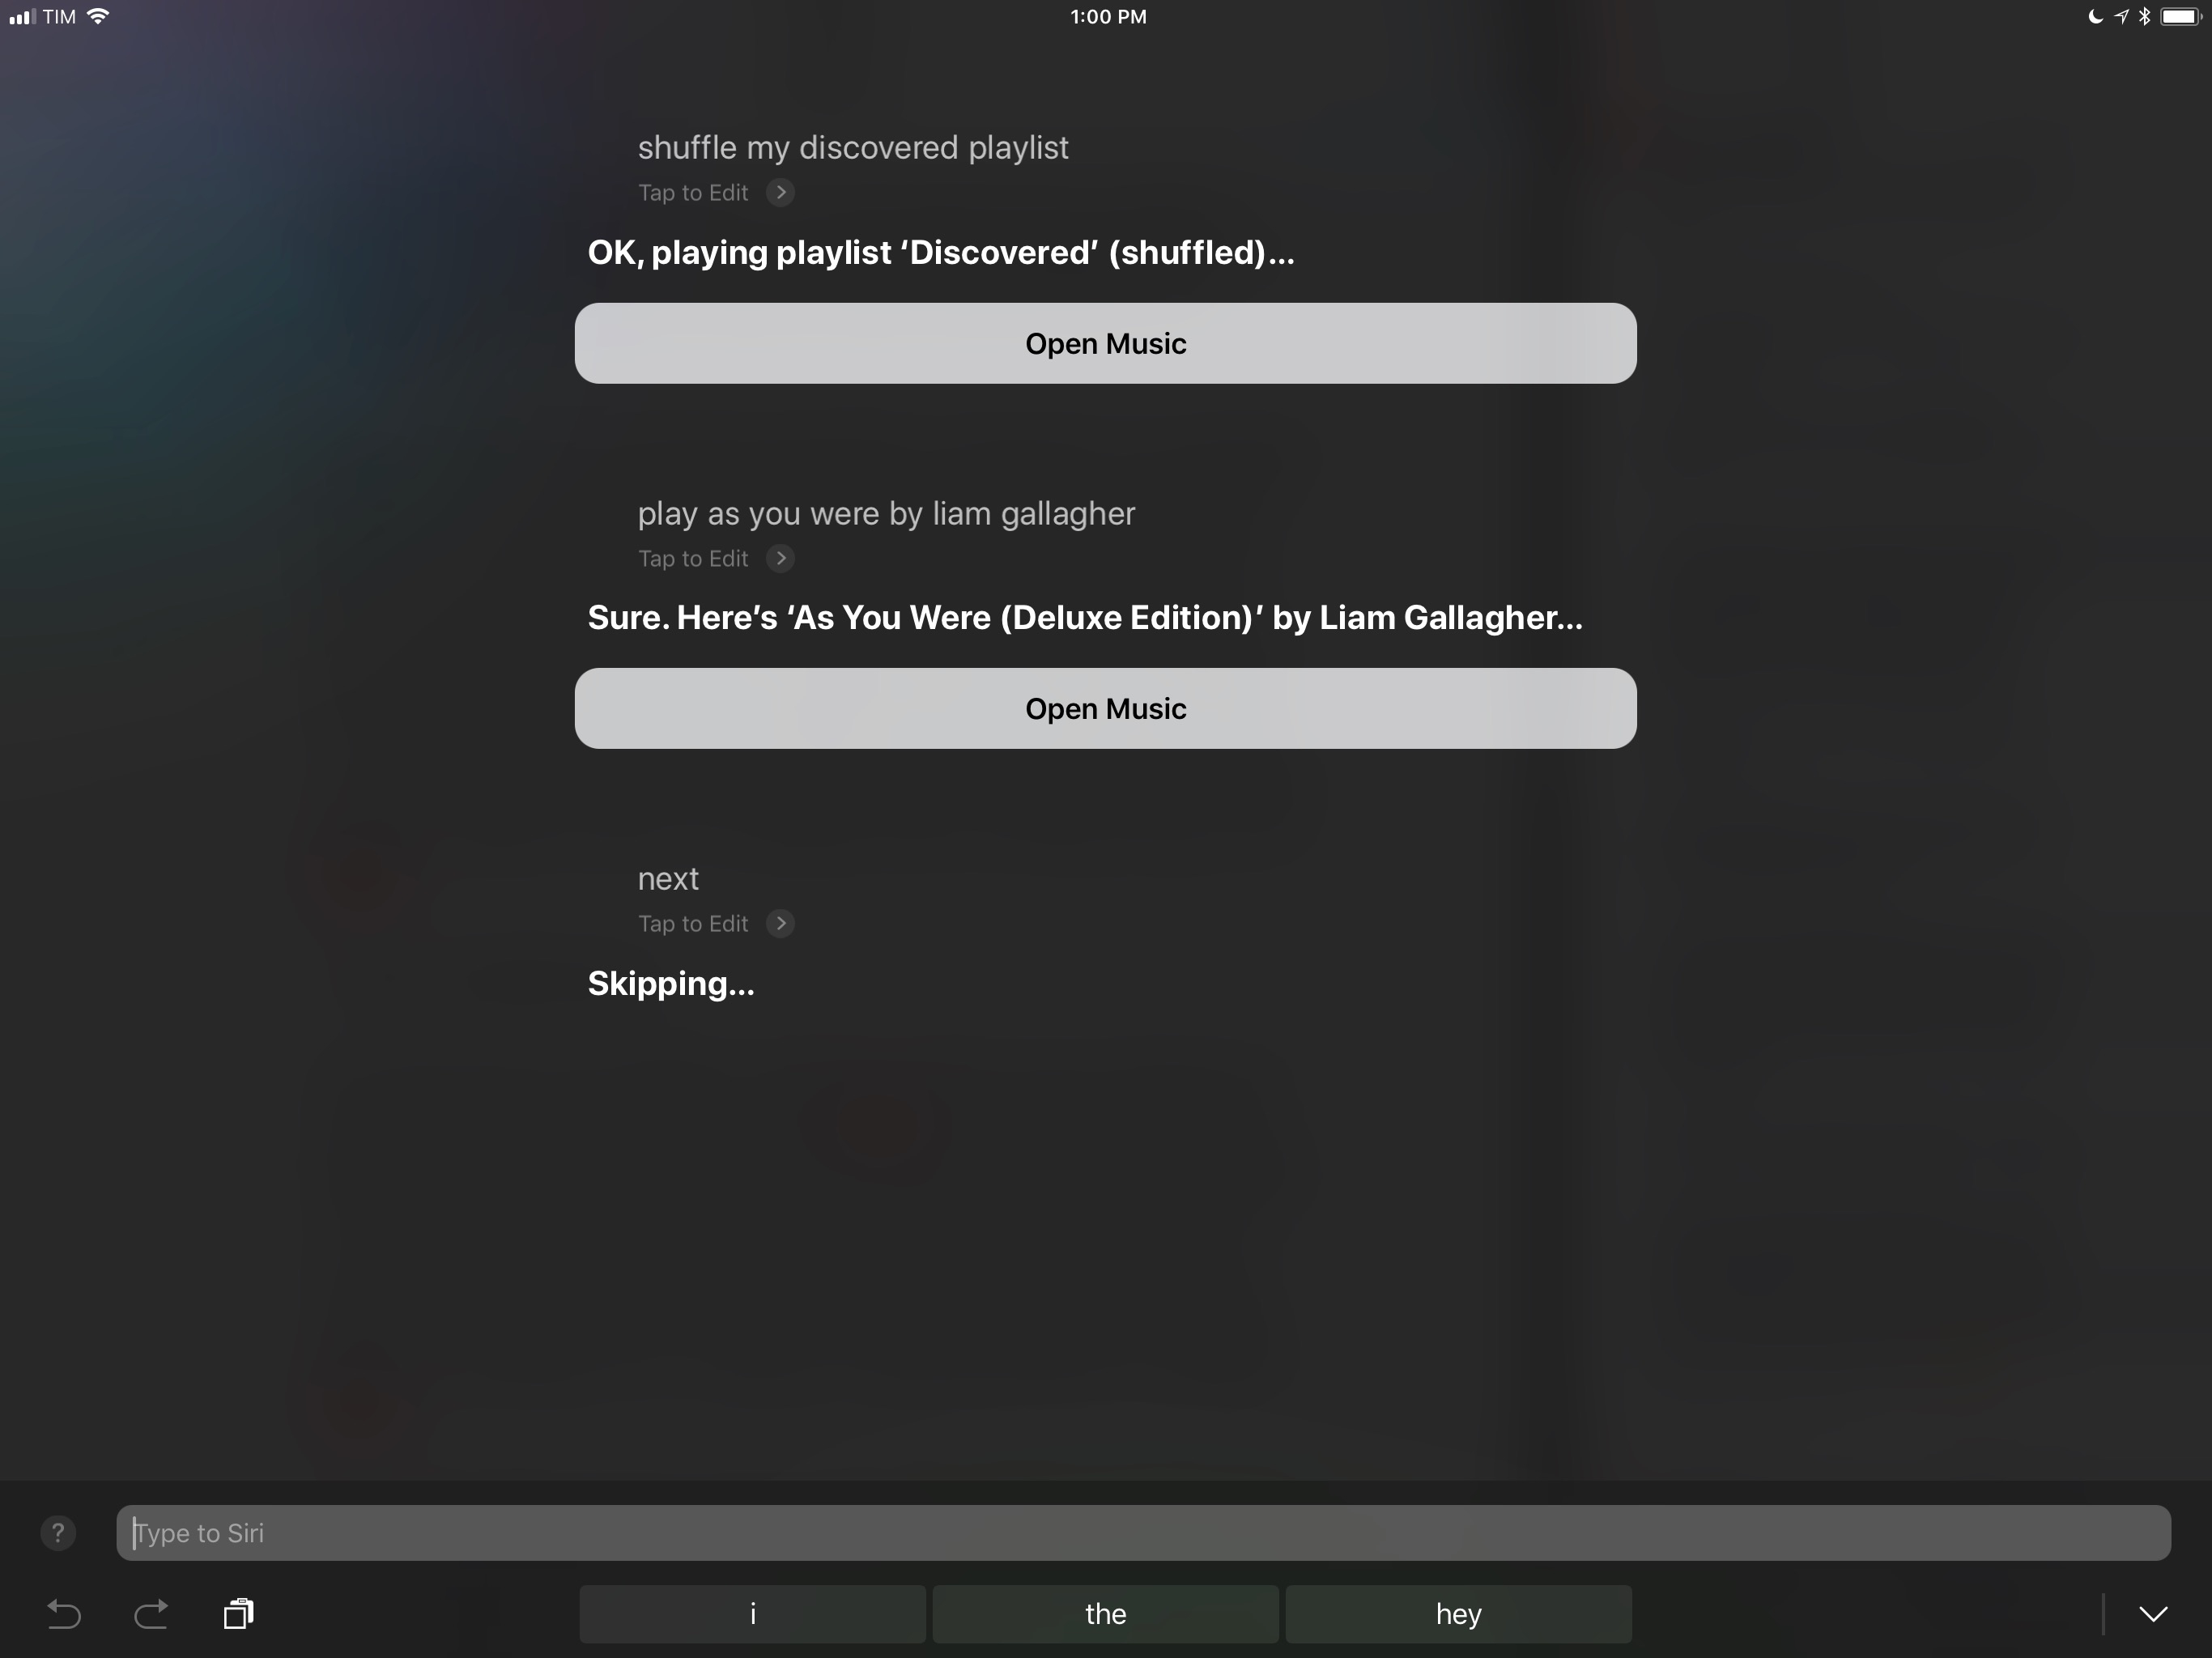 Controlling music playback with Type to Siri.